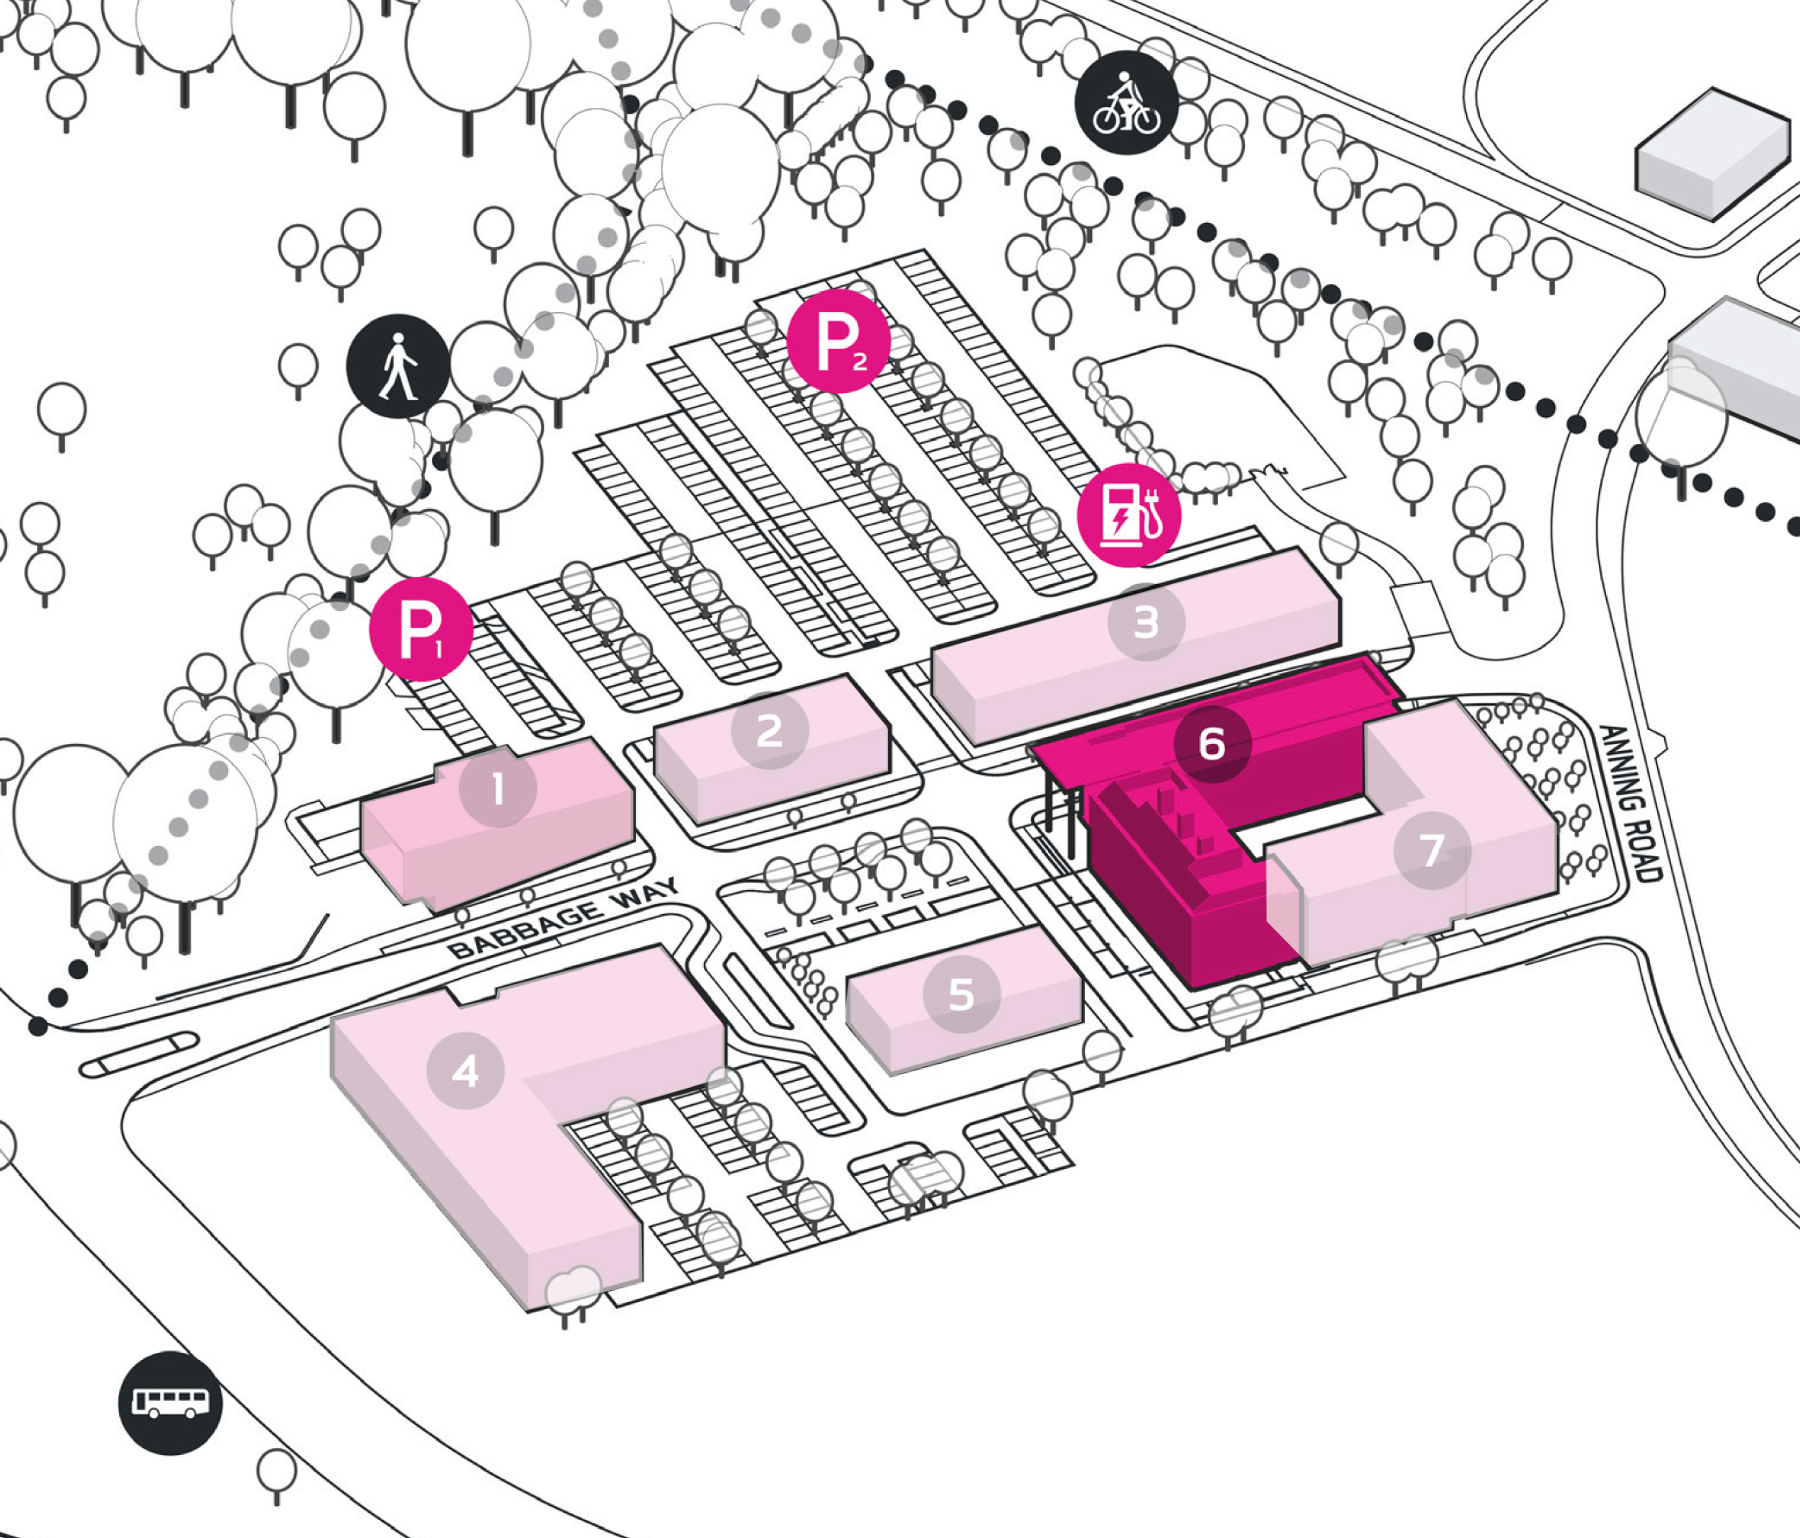 Park Plan highlighting cluster A Building 6